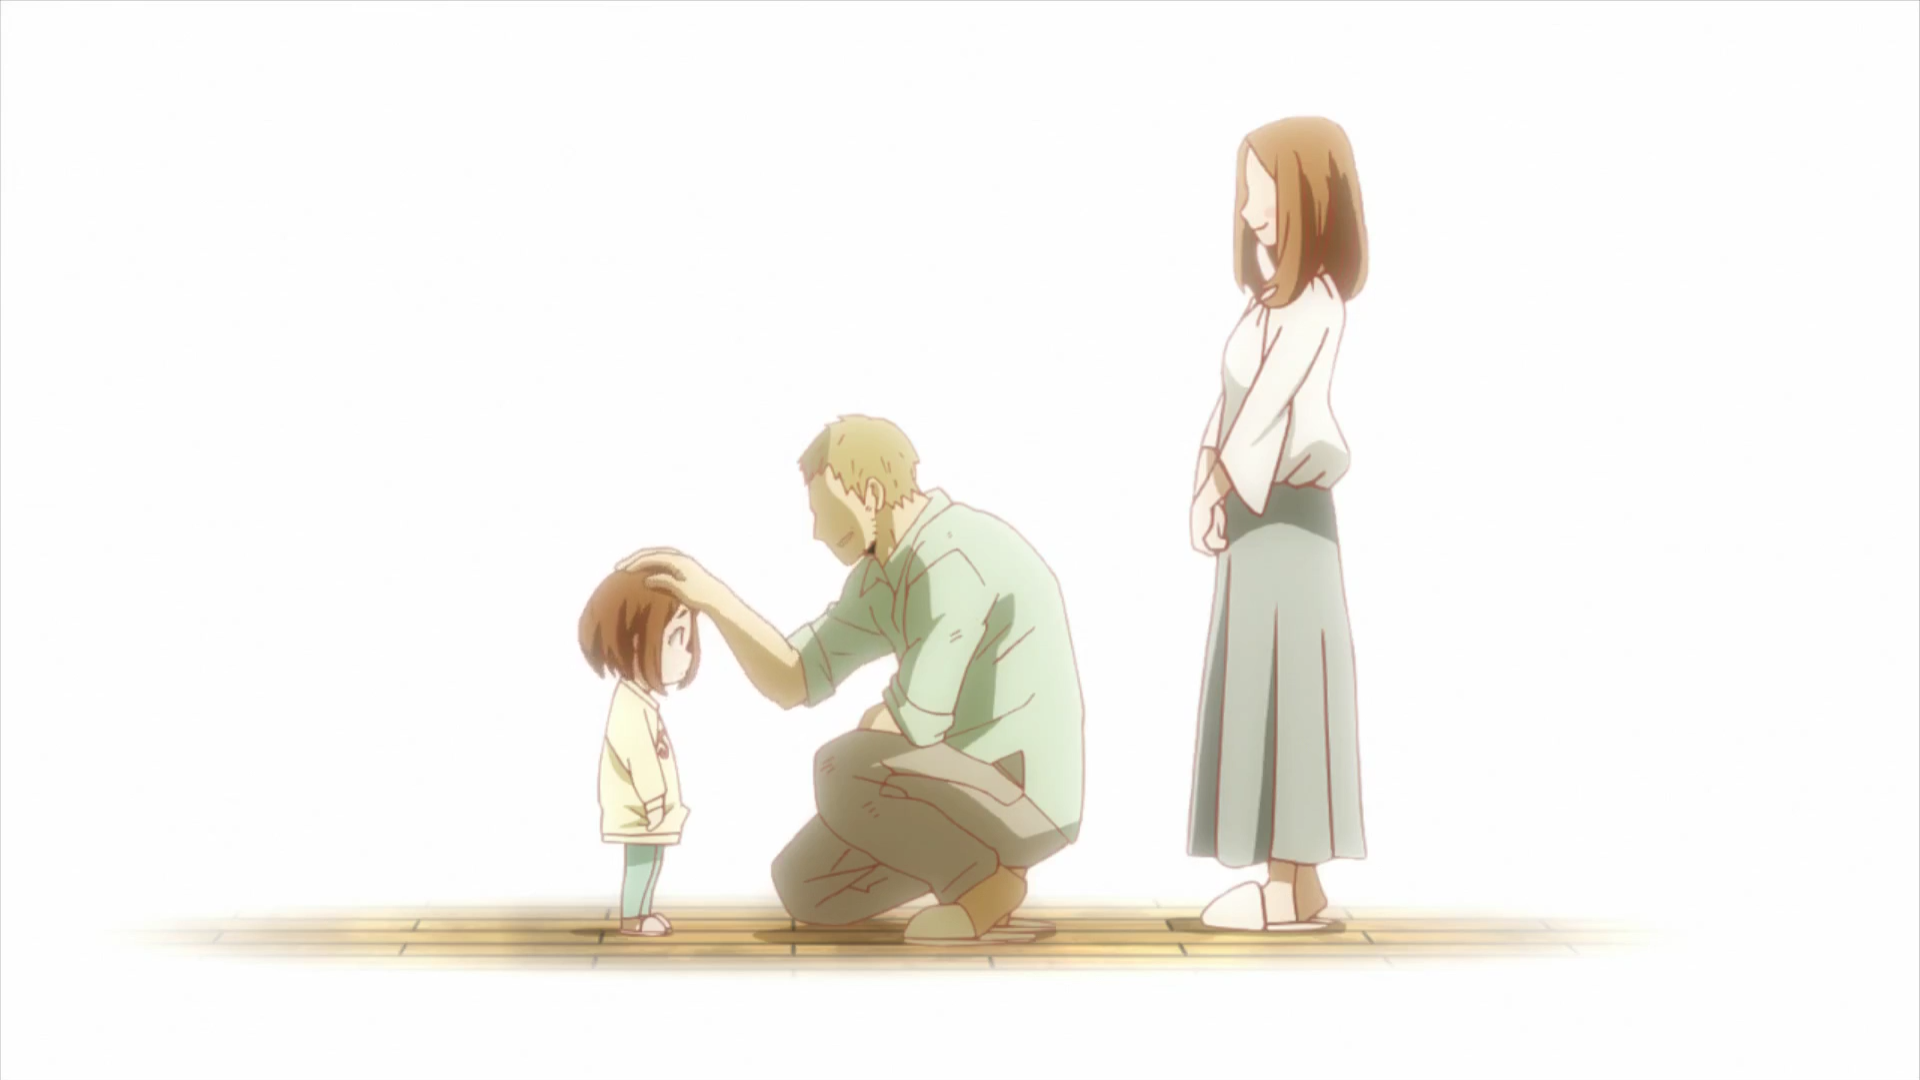 Ochaco Urarakarelationships  Boku No Hero Academia Wiki  Fandom  Ochacos Parents